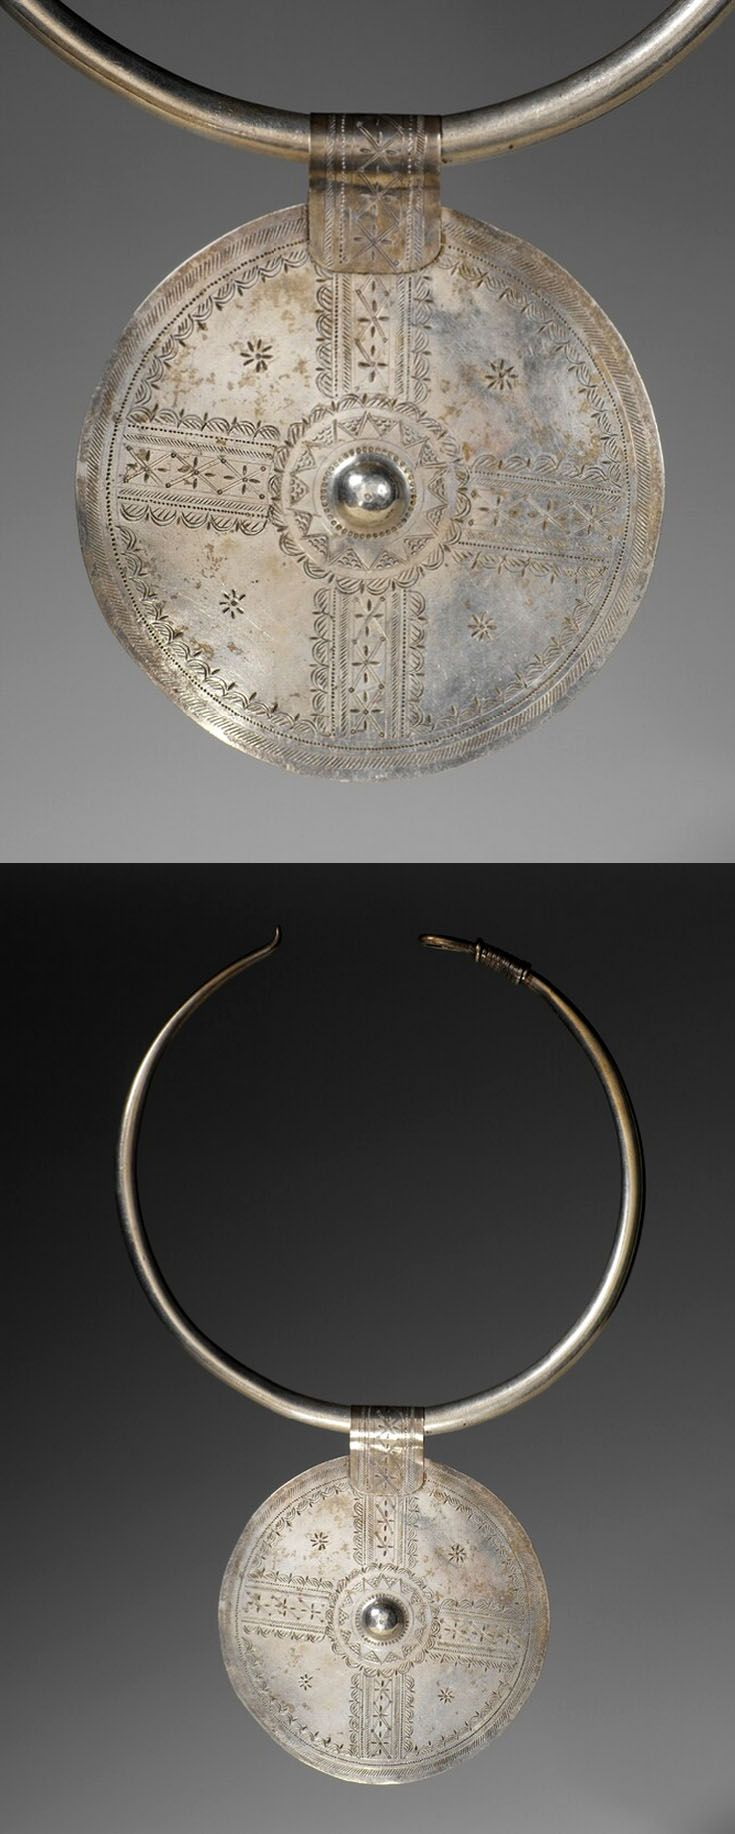 Egypt - Matrouh, Siwa Oasis | Woman's marriage necklace ( Torque; Aghraw & Disc; Adrim); silver. | ca. early 20th century | © Musée du quai Branly